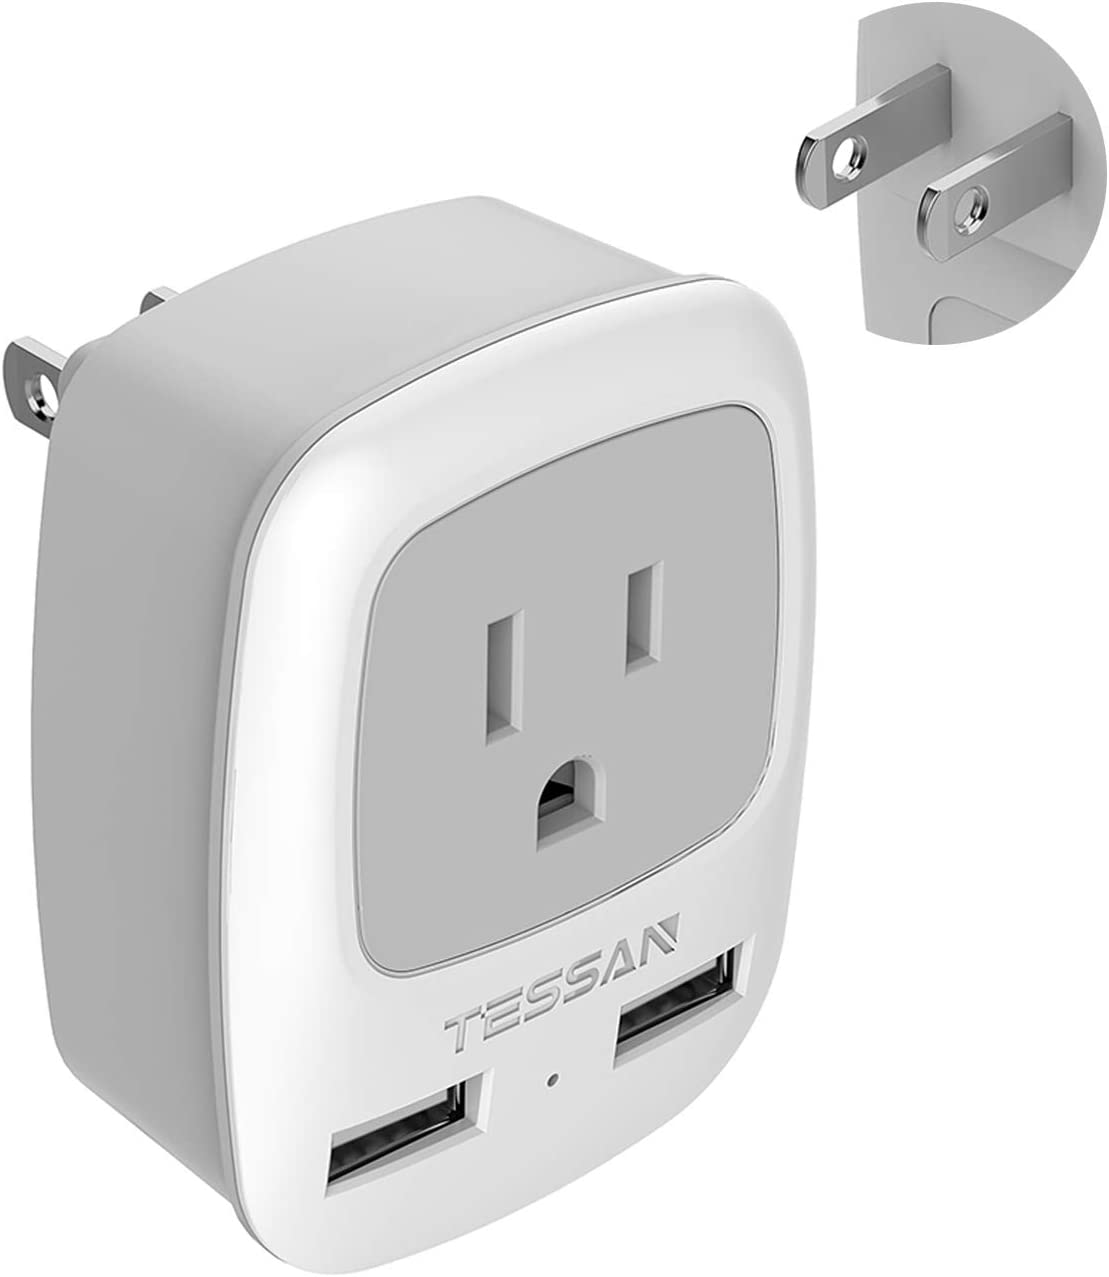 3 Prong to 2 Prong Adapter, TESSAN Japan Power Adapter Plug with USB Wall Charger, Multi Outlet Cruise Ship Accessories, Travel Adaptor for US to Japanese Canada Philippine - Type A